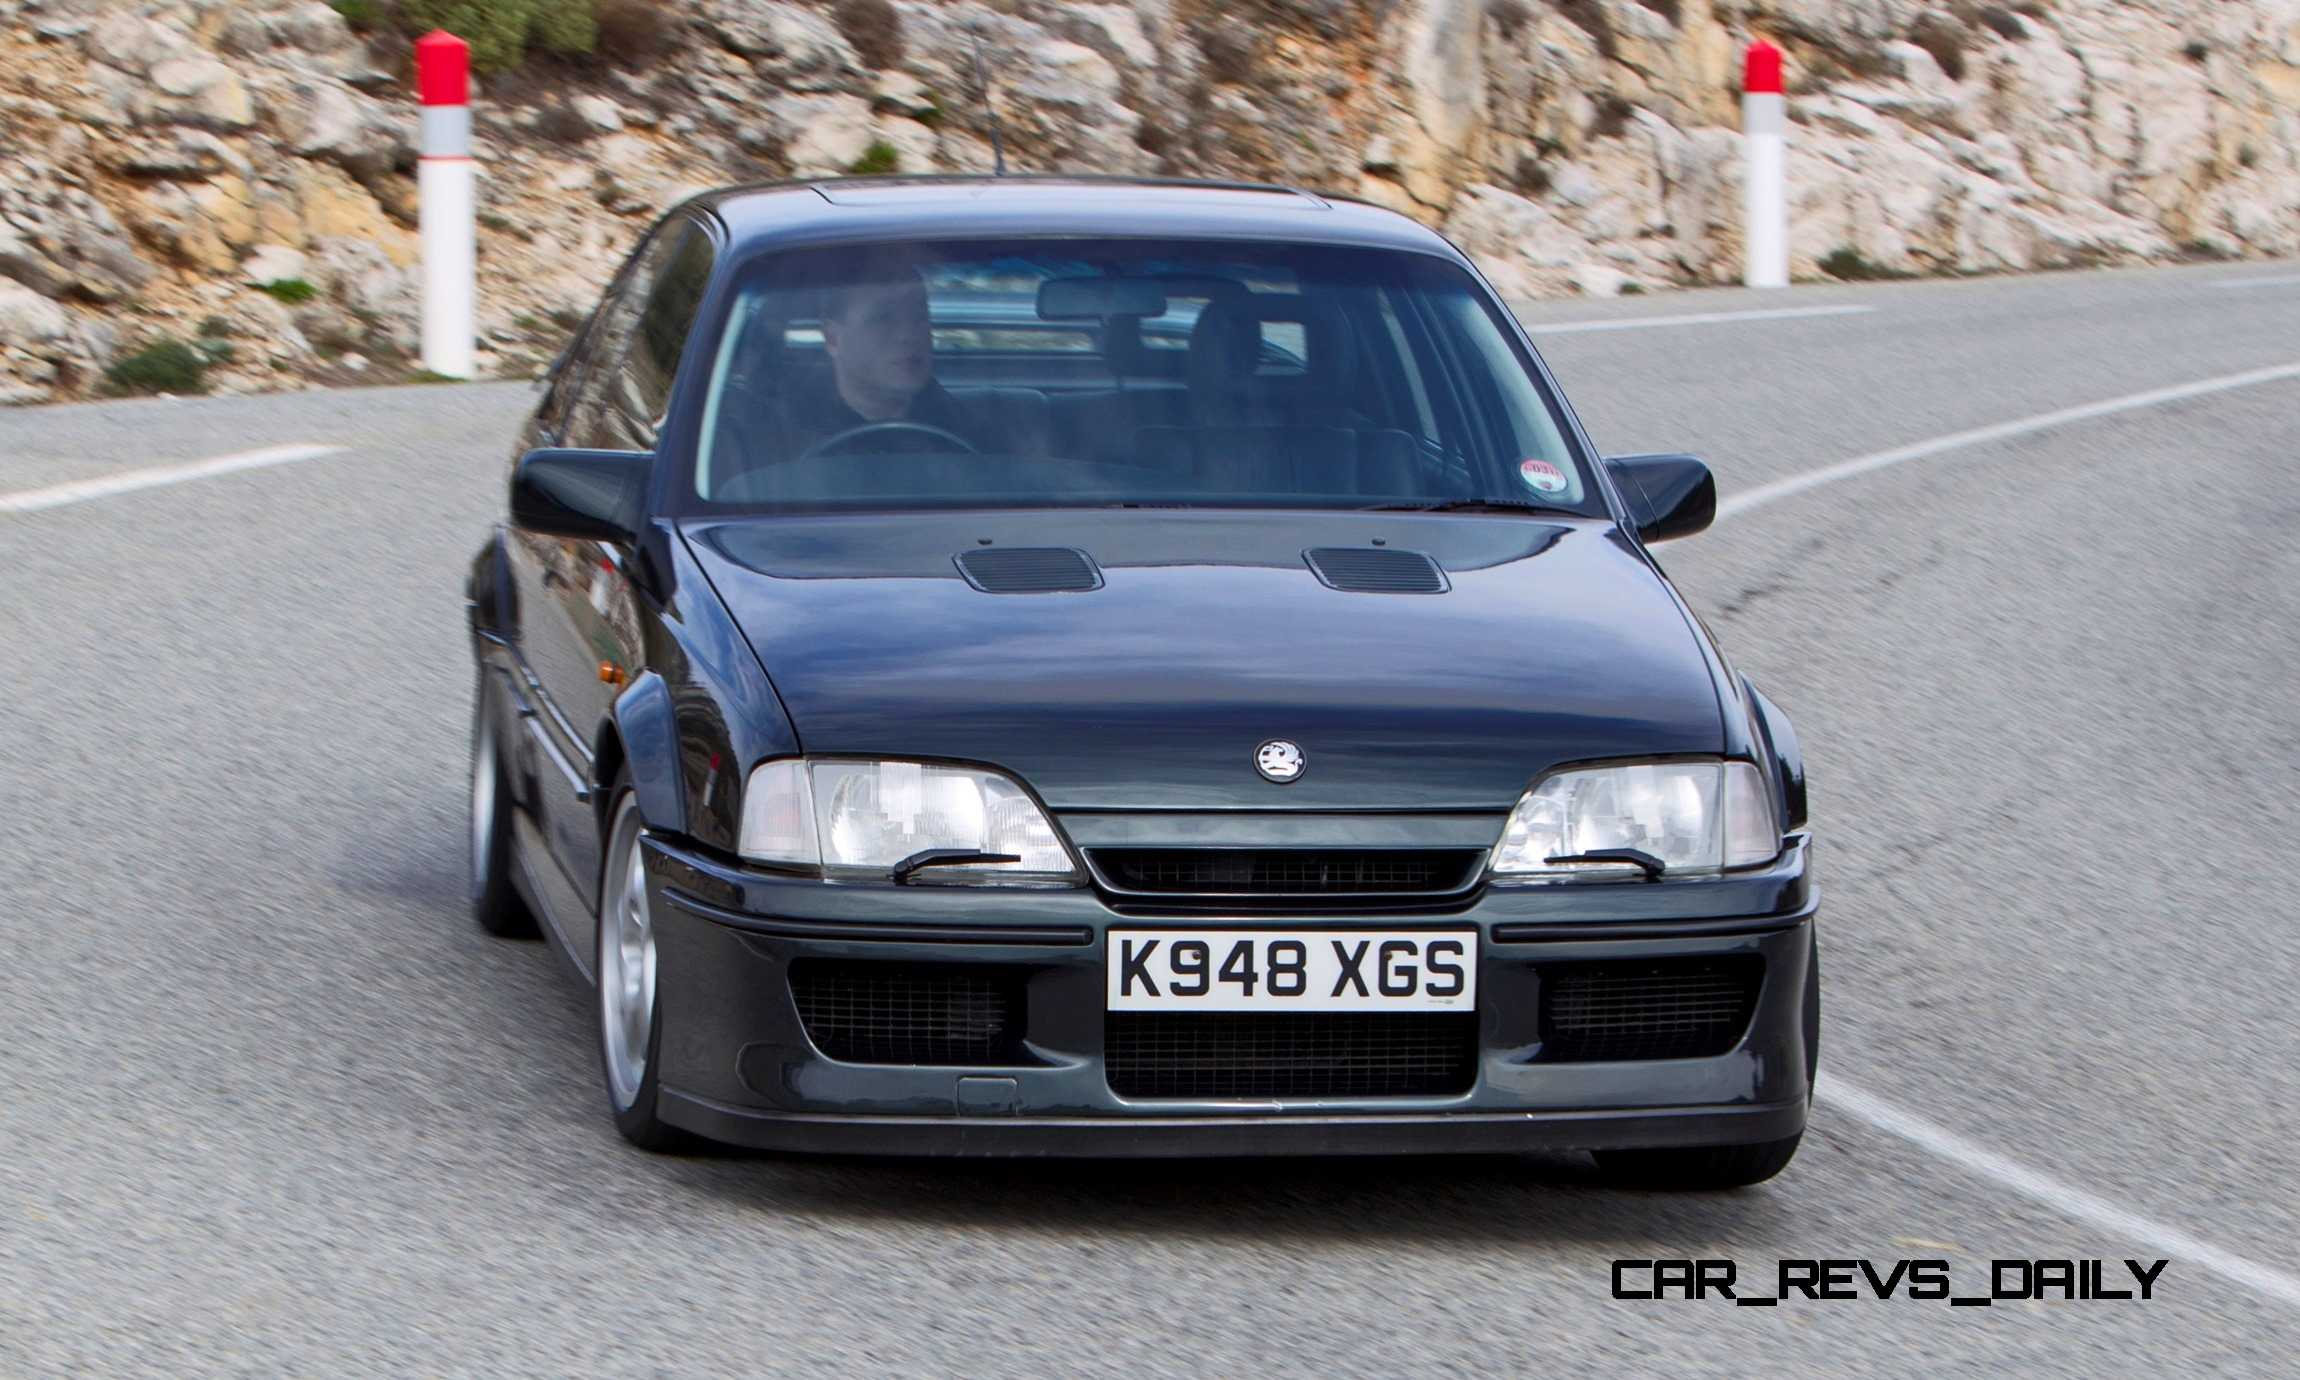 vauxhall lotus carlton top speed forza horizon 2 vauxhall. Black Bedroom Furniture Sets. Home Design Ideas